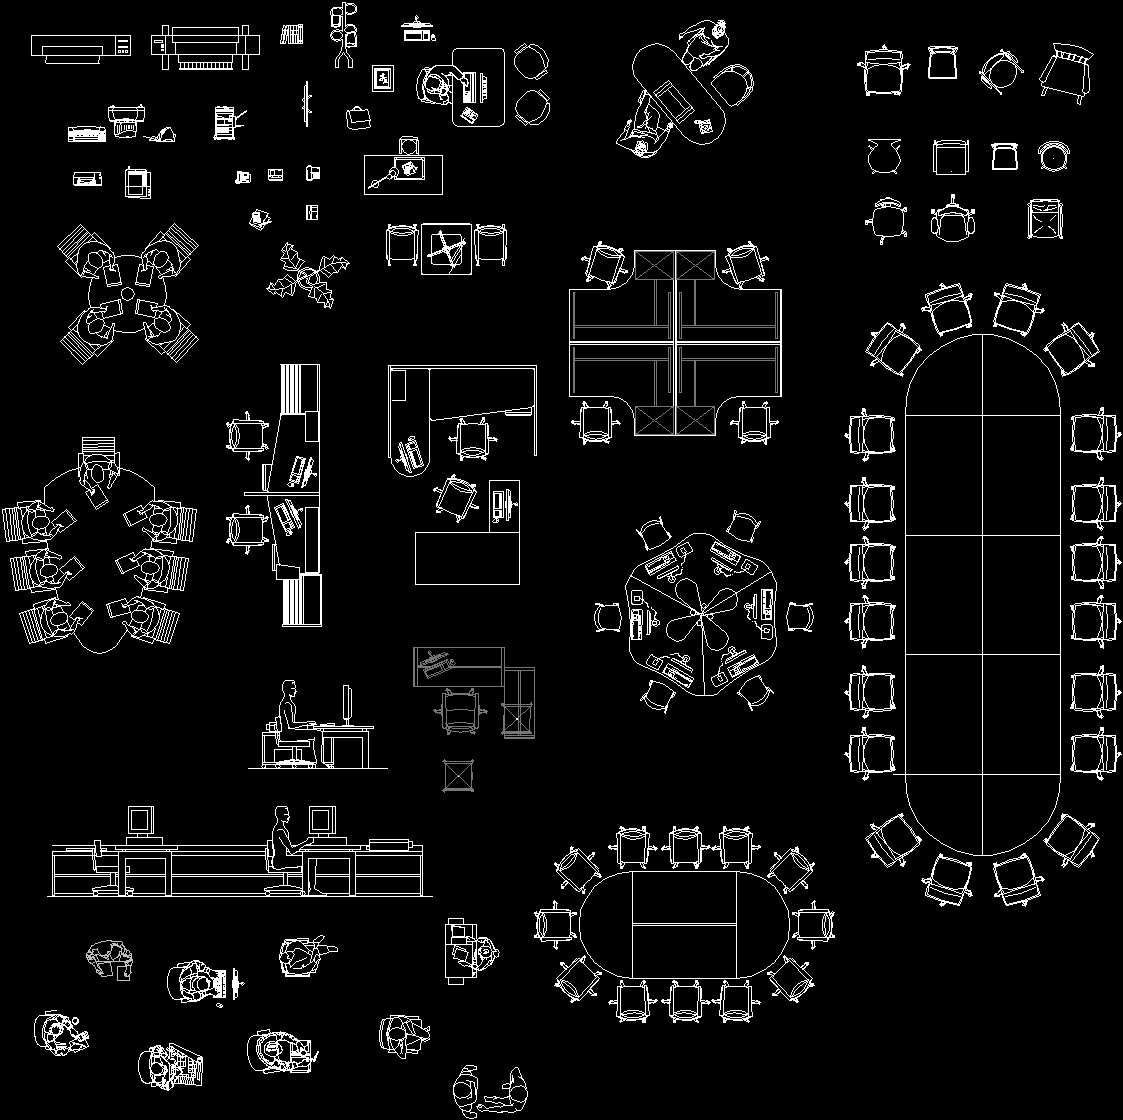 Autocad Blocks Blocks Equipment For Desktop Dwg Block For Autocad Designs Cad